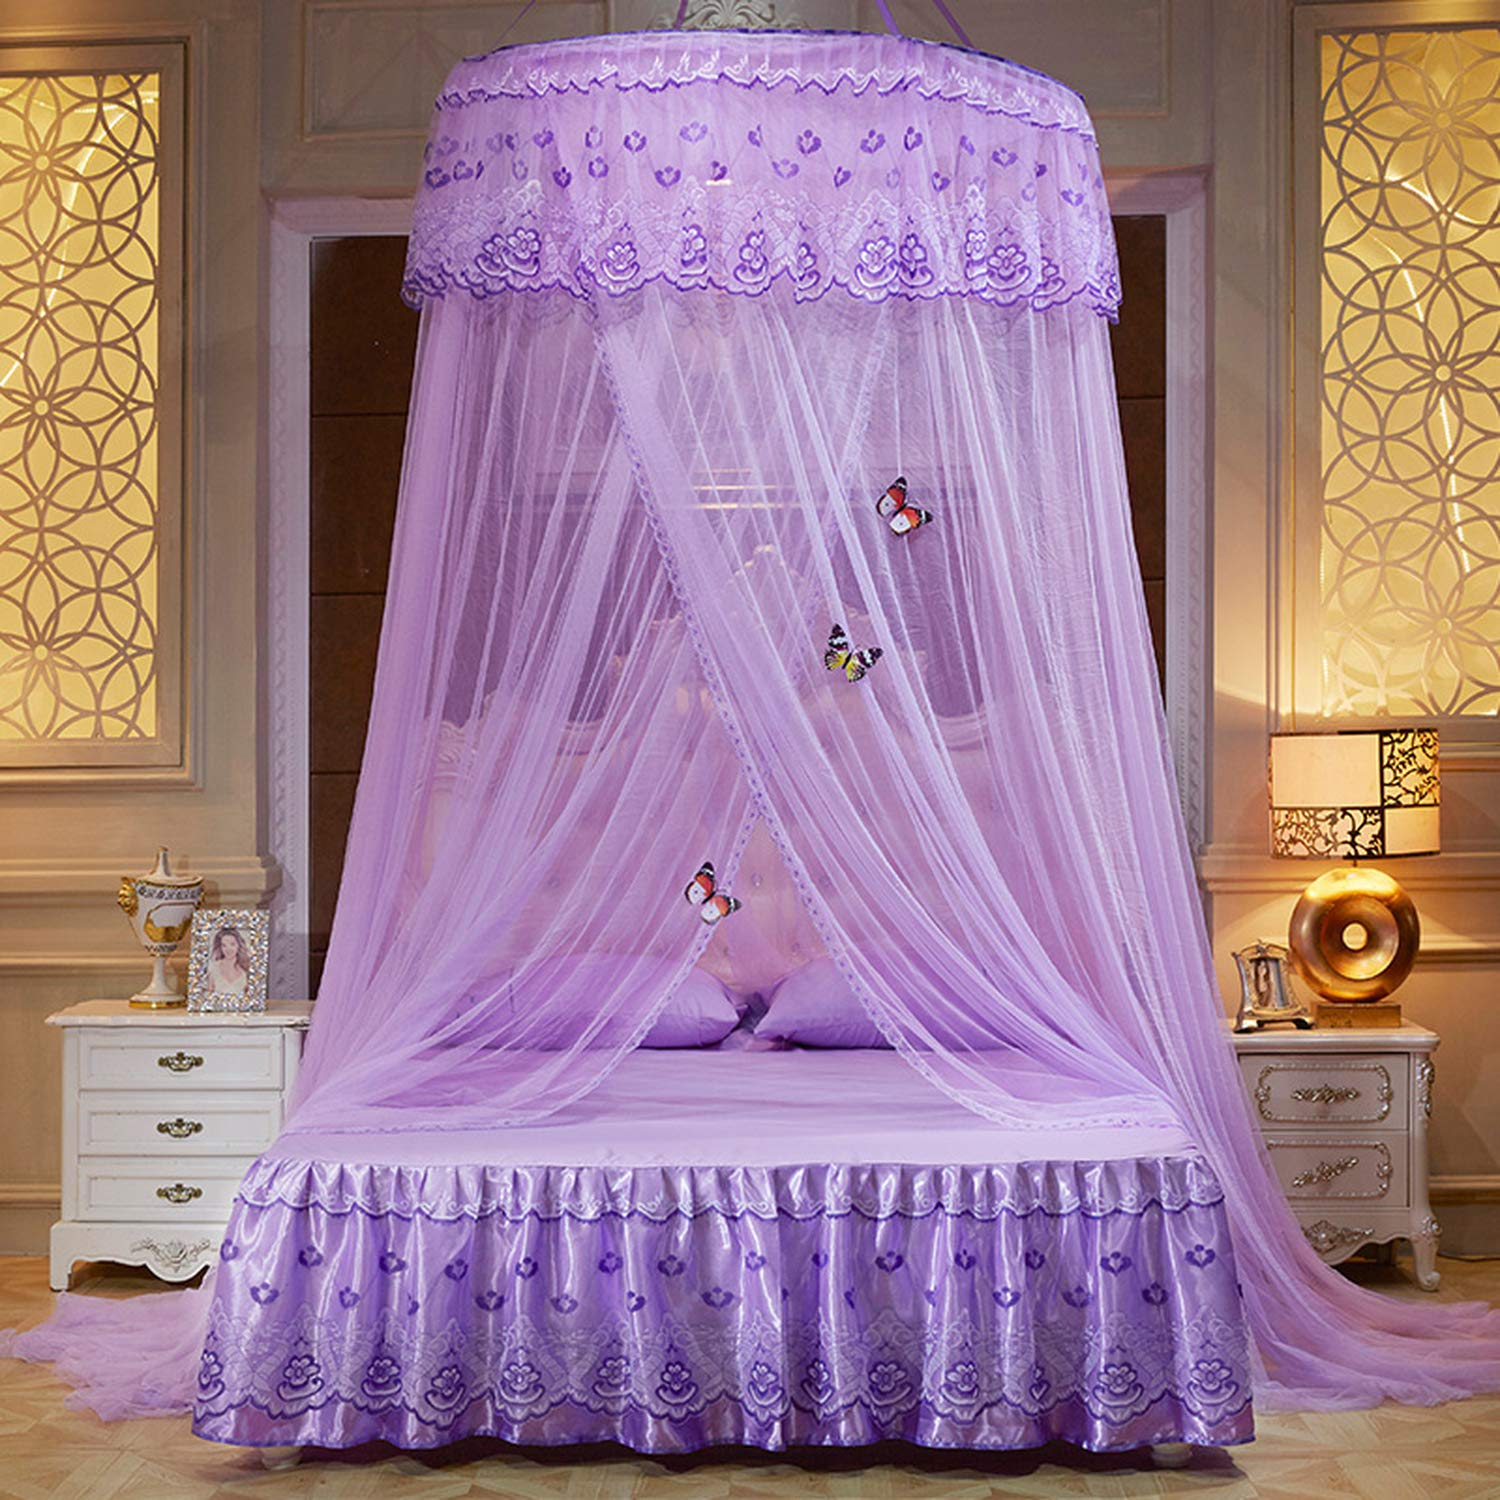 Folding Palace Mosquito Net Double Bed Mosquito Net Adults Anti Insert Bed Tent Kids Canopy Princess Bed Curtain Mesh,Pink,1.5m (5 feet) Bed by SuWuan mosquito net (Image #2)